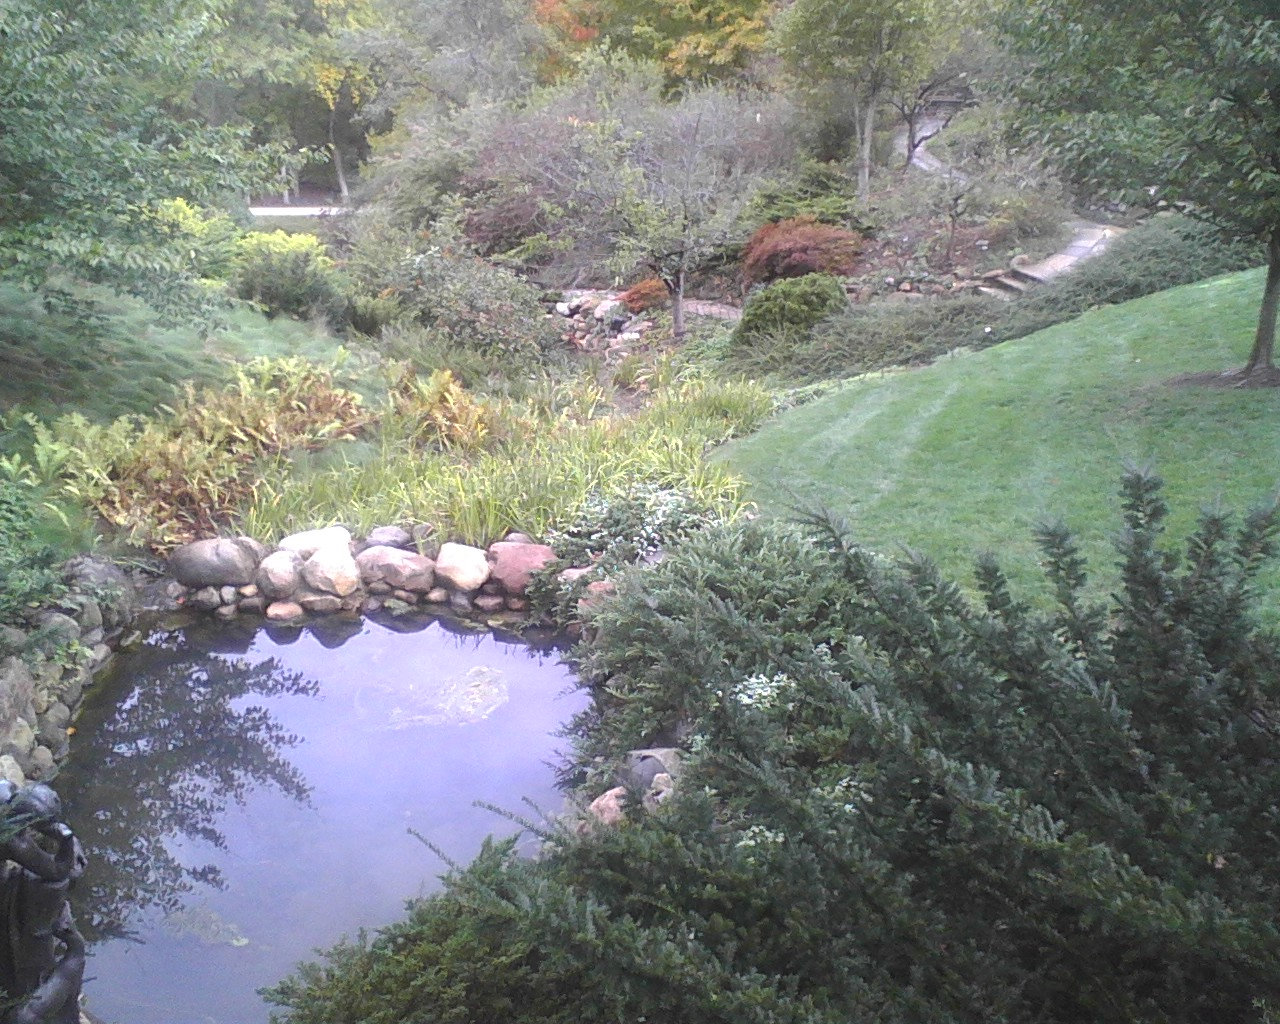 The not-so-creatively named Ravine Gardens on the IMA grounds (courtesy Jeff Kamm)